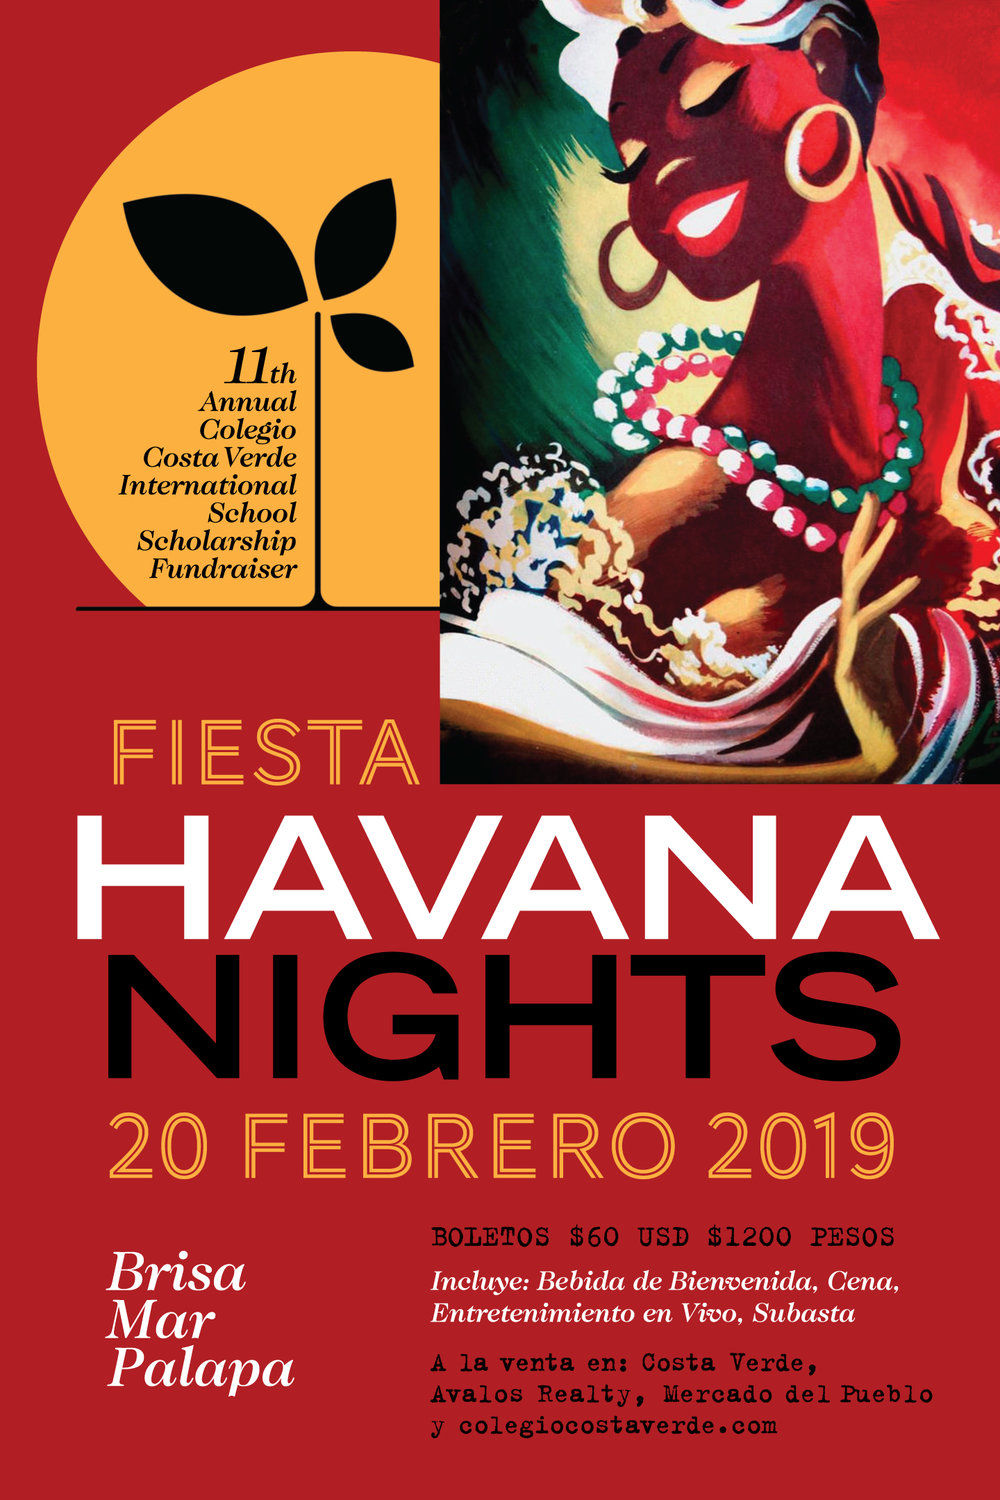 Havana_Nights_Invitation_final.jpg